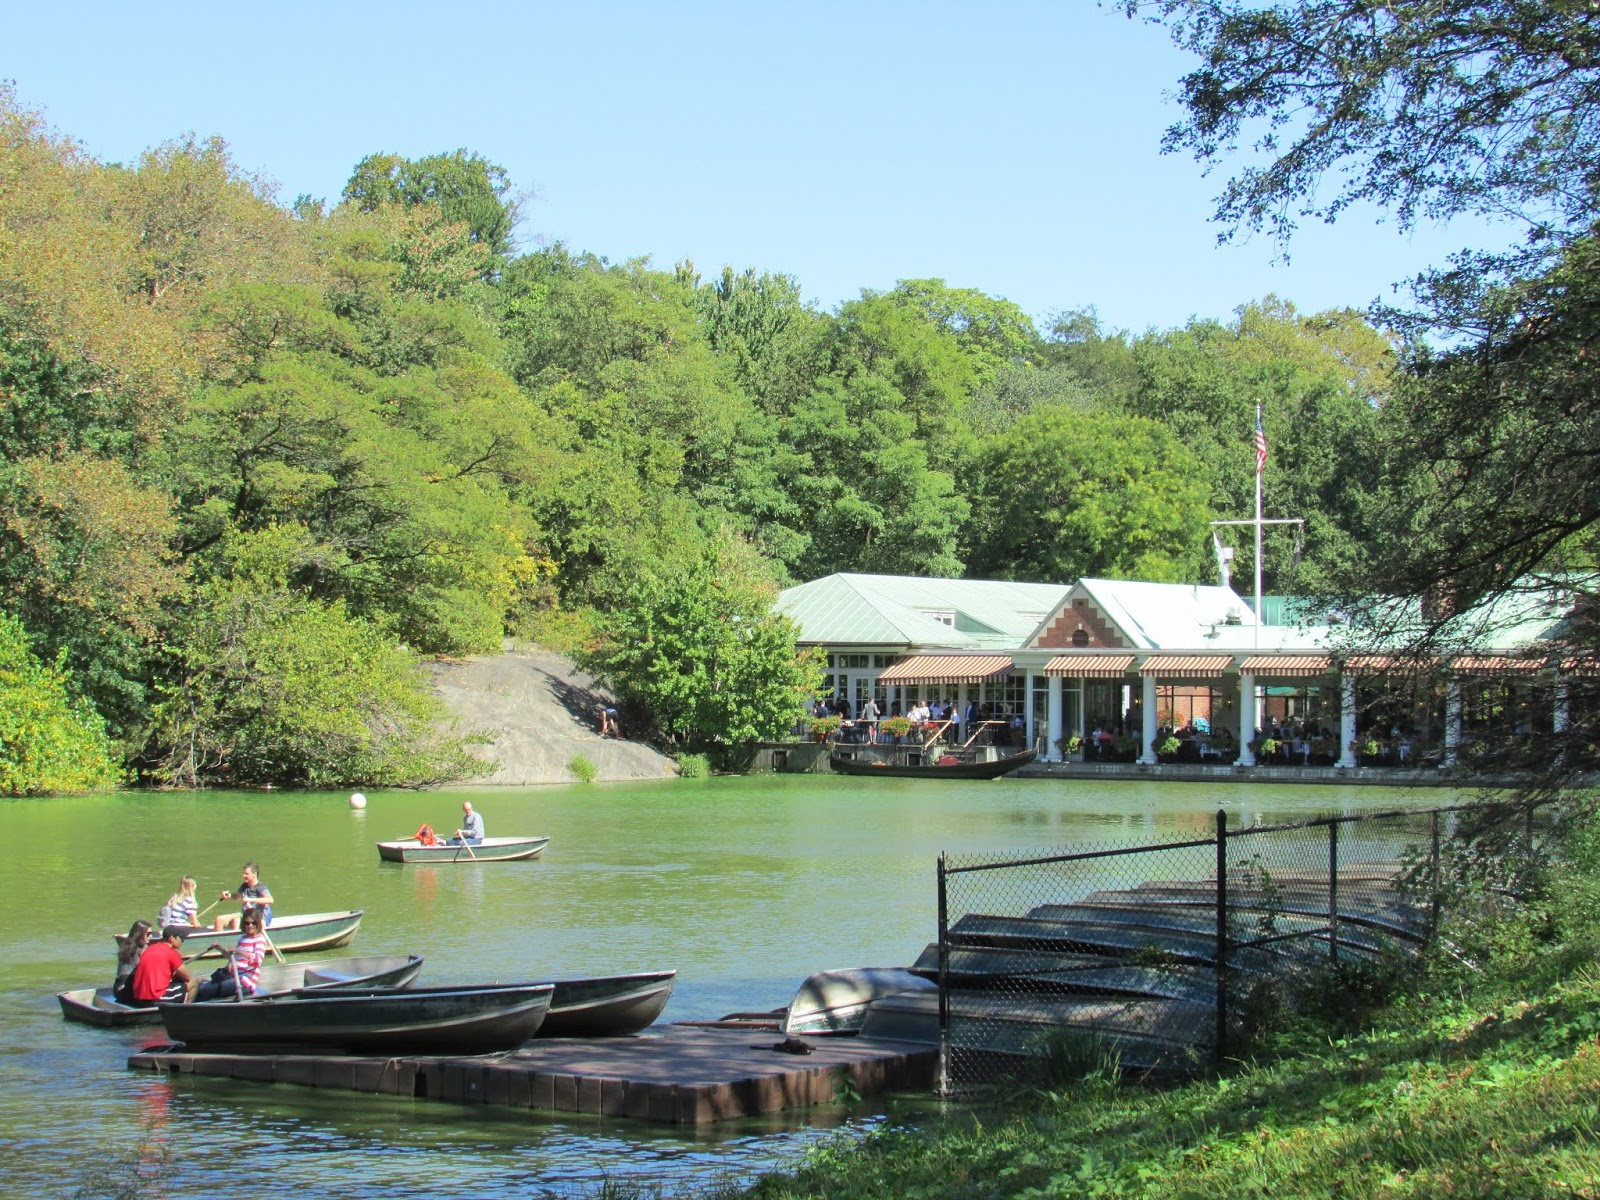 The Loeb Boathouse, Central Park, New York - Maggie May